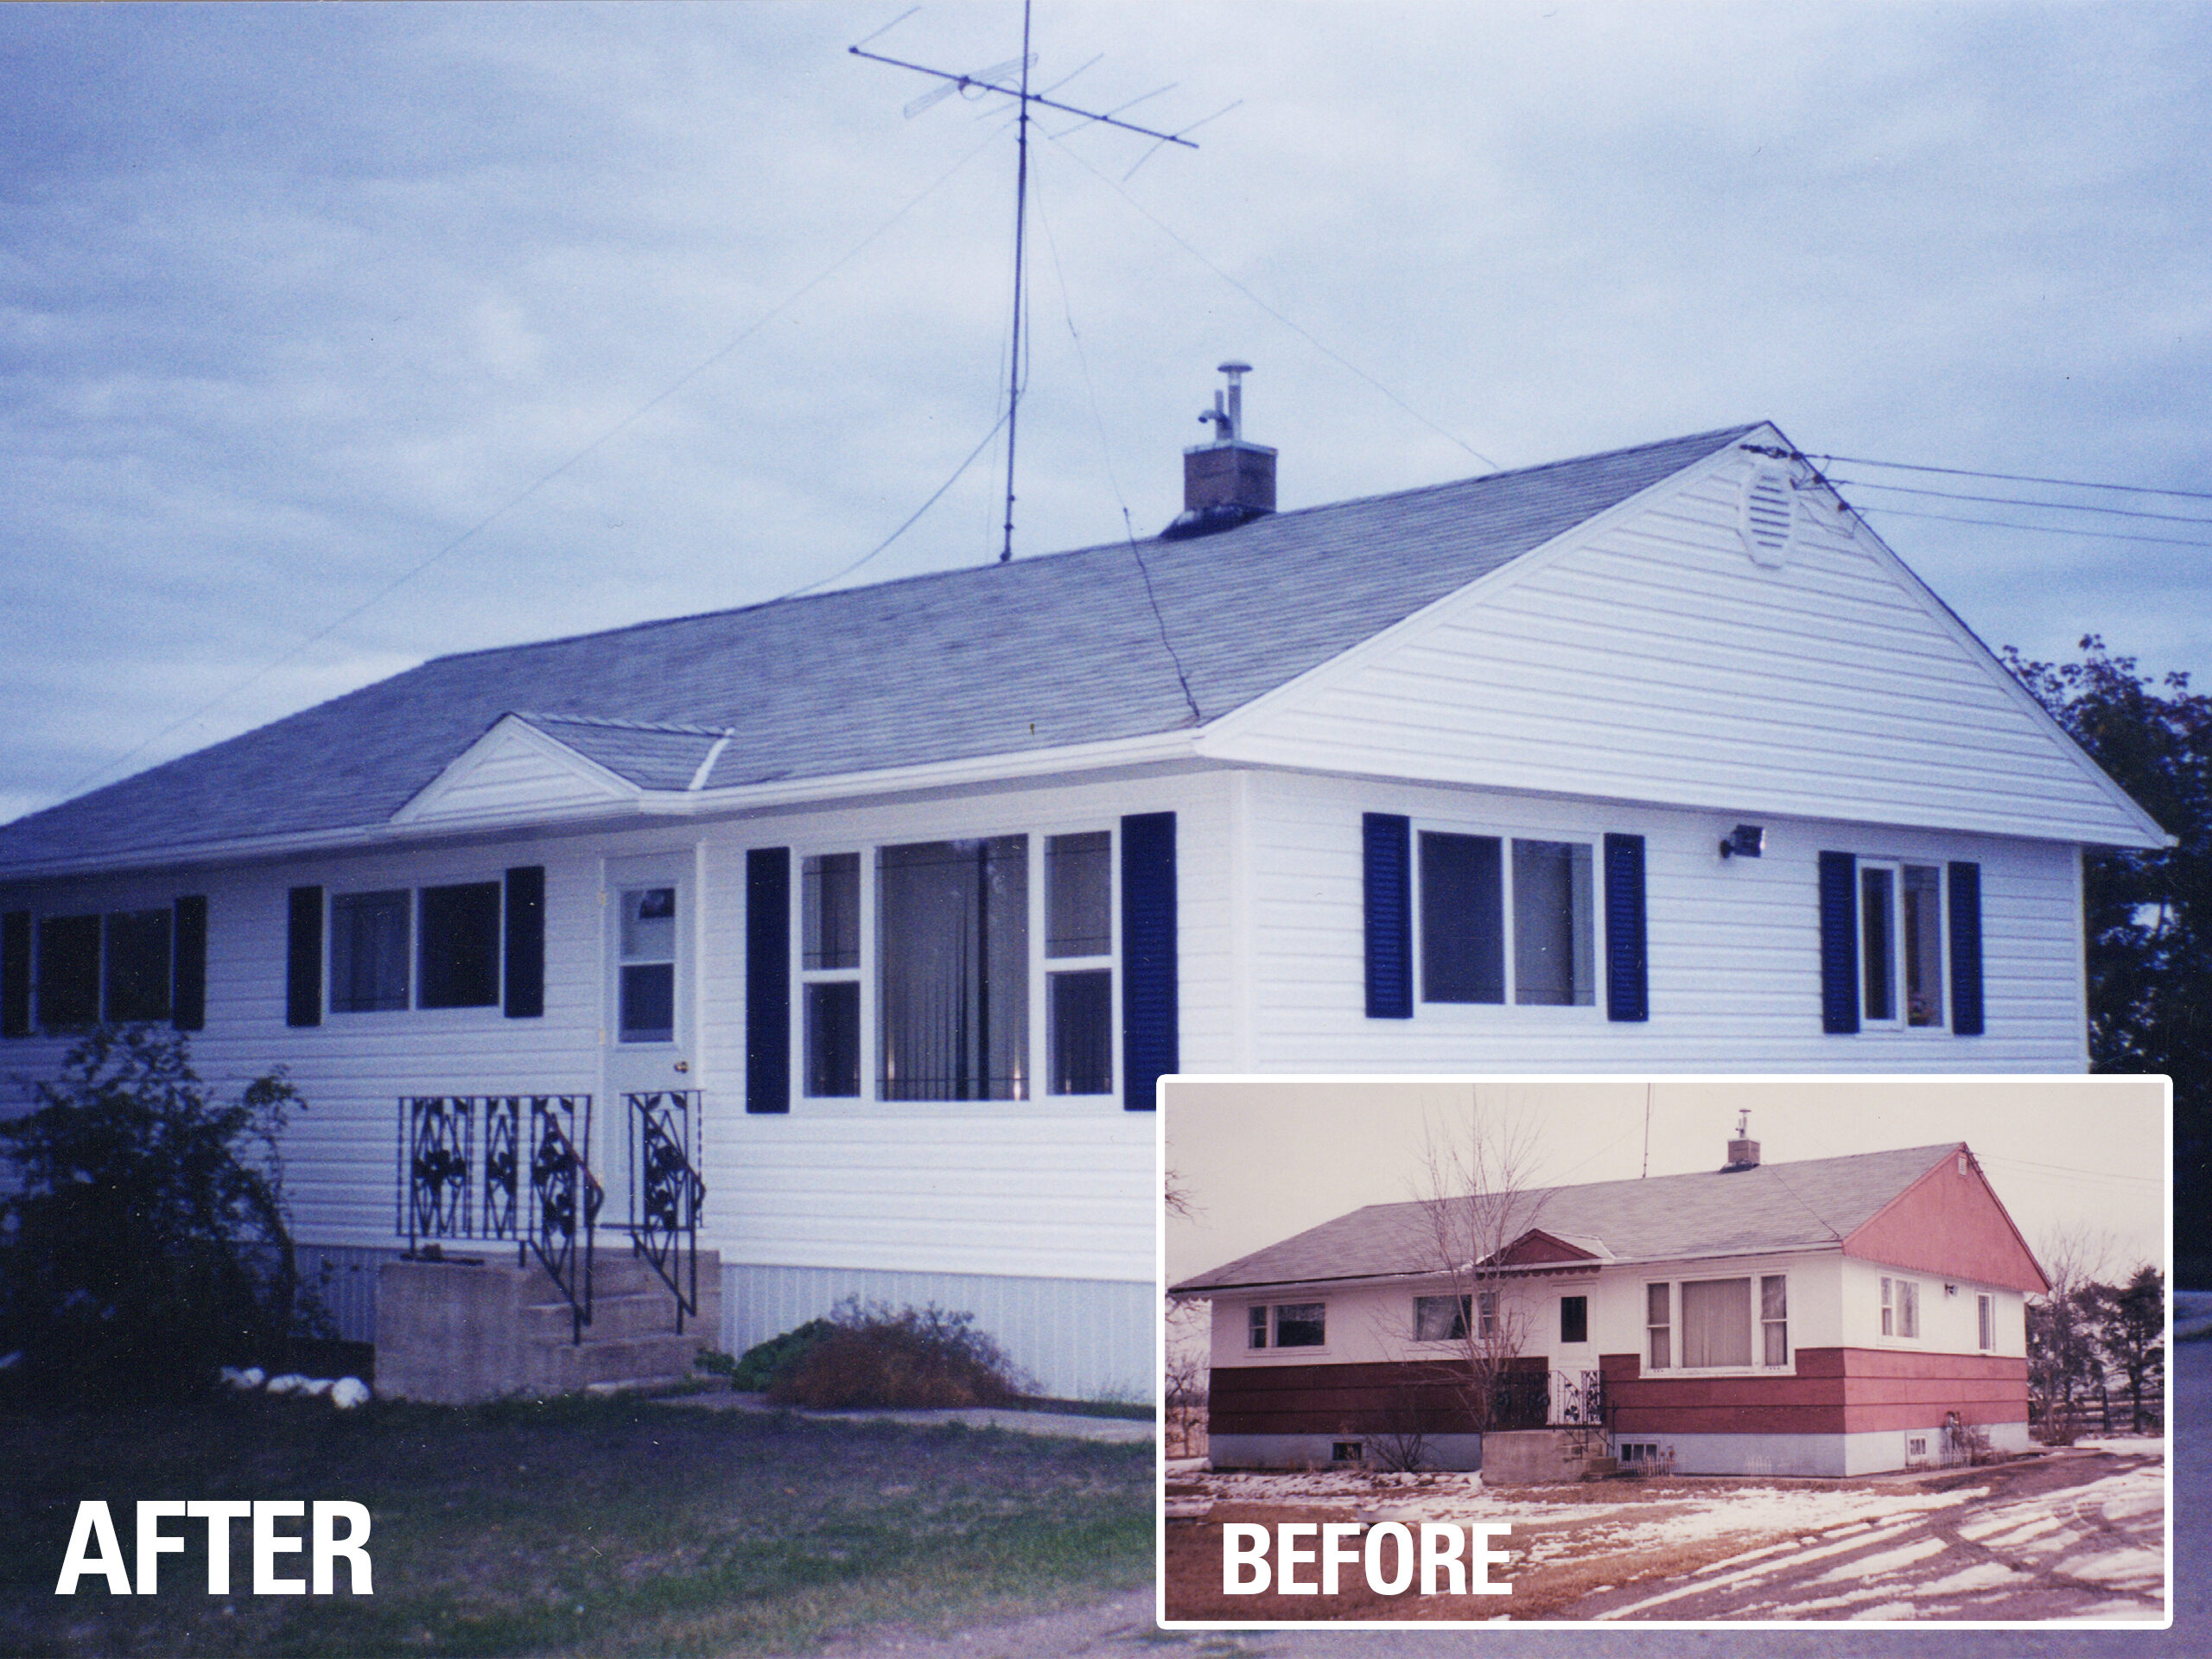 house 01 - before and after pic